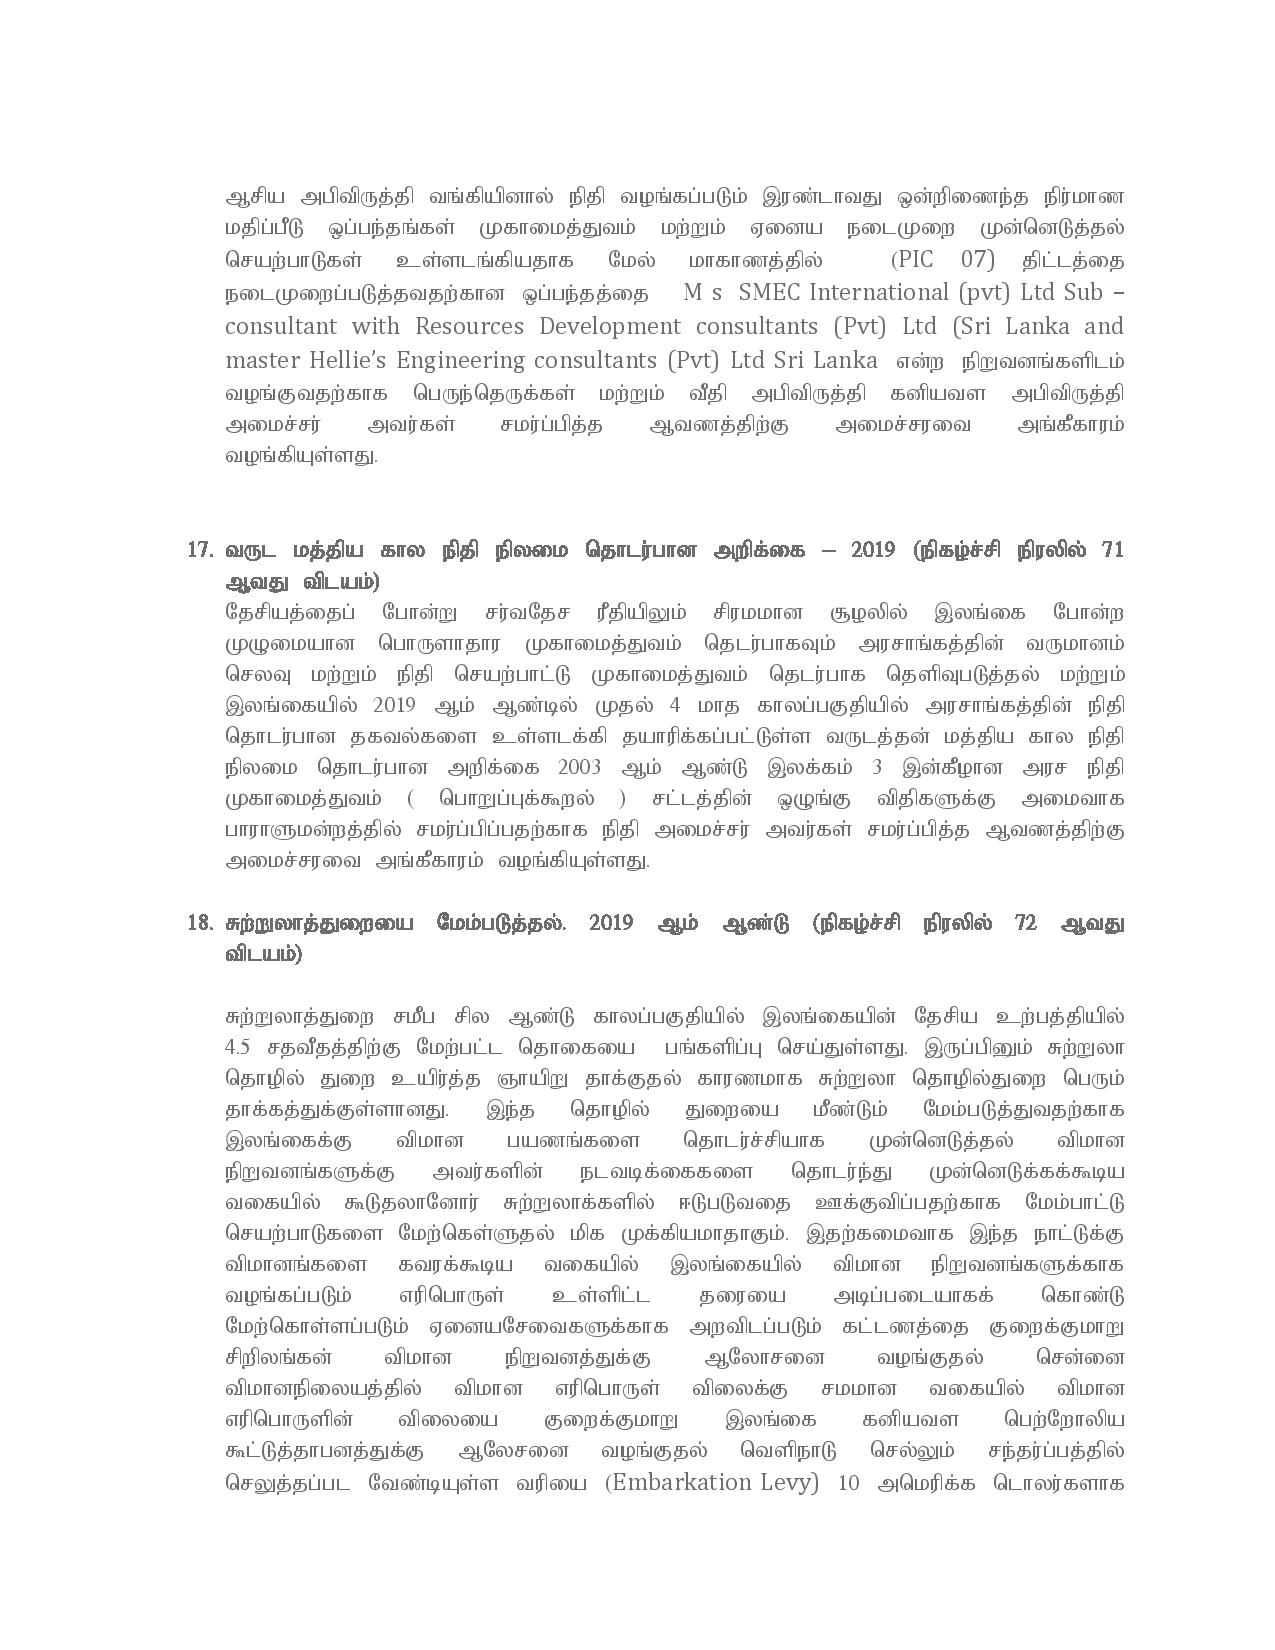 Taamil Cabinet 07.07.2019 1 page 007 Copy